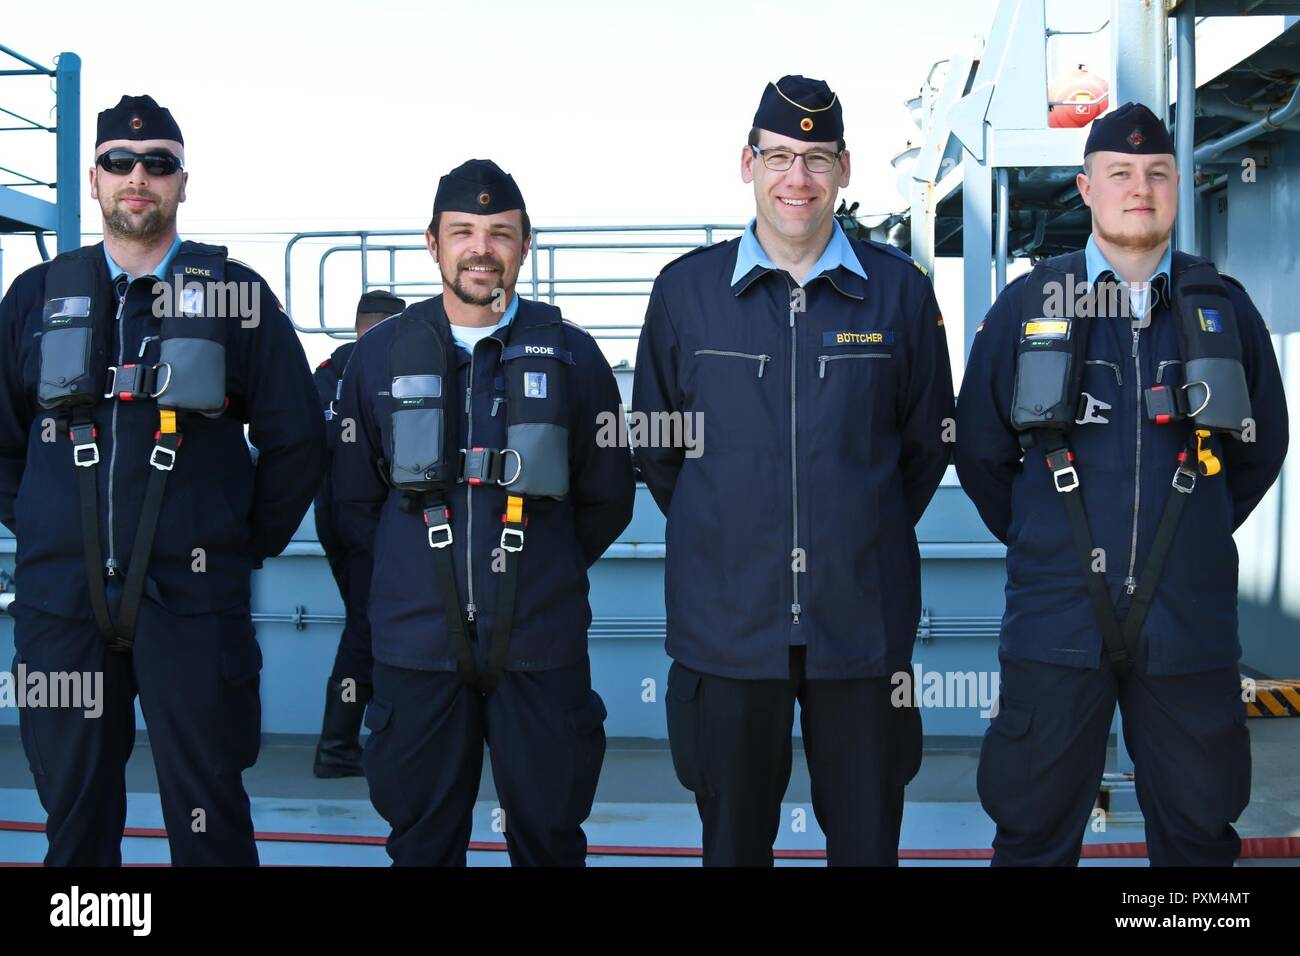 Fgs Security fgs elbe stock photos & fgs elbe stock images - alamy